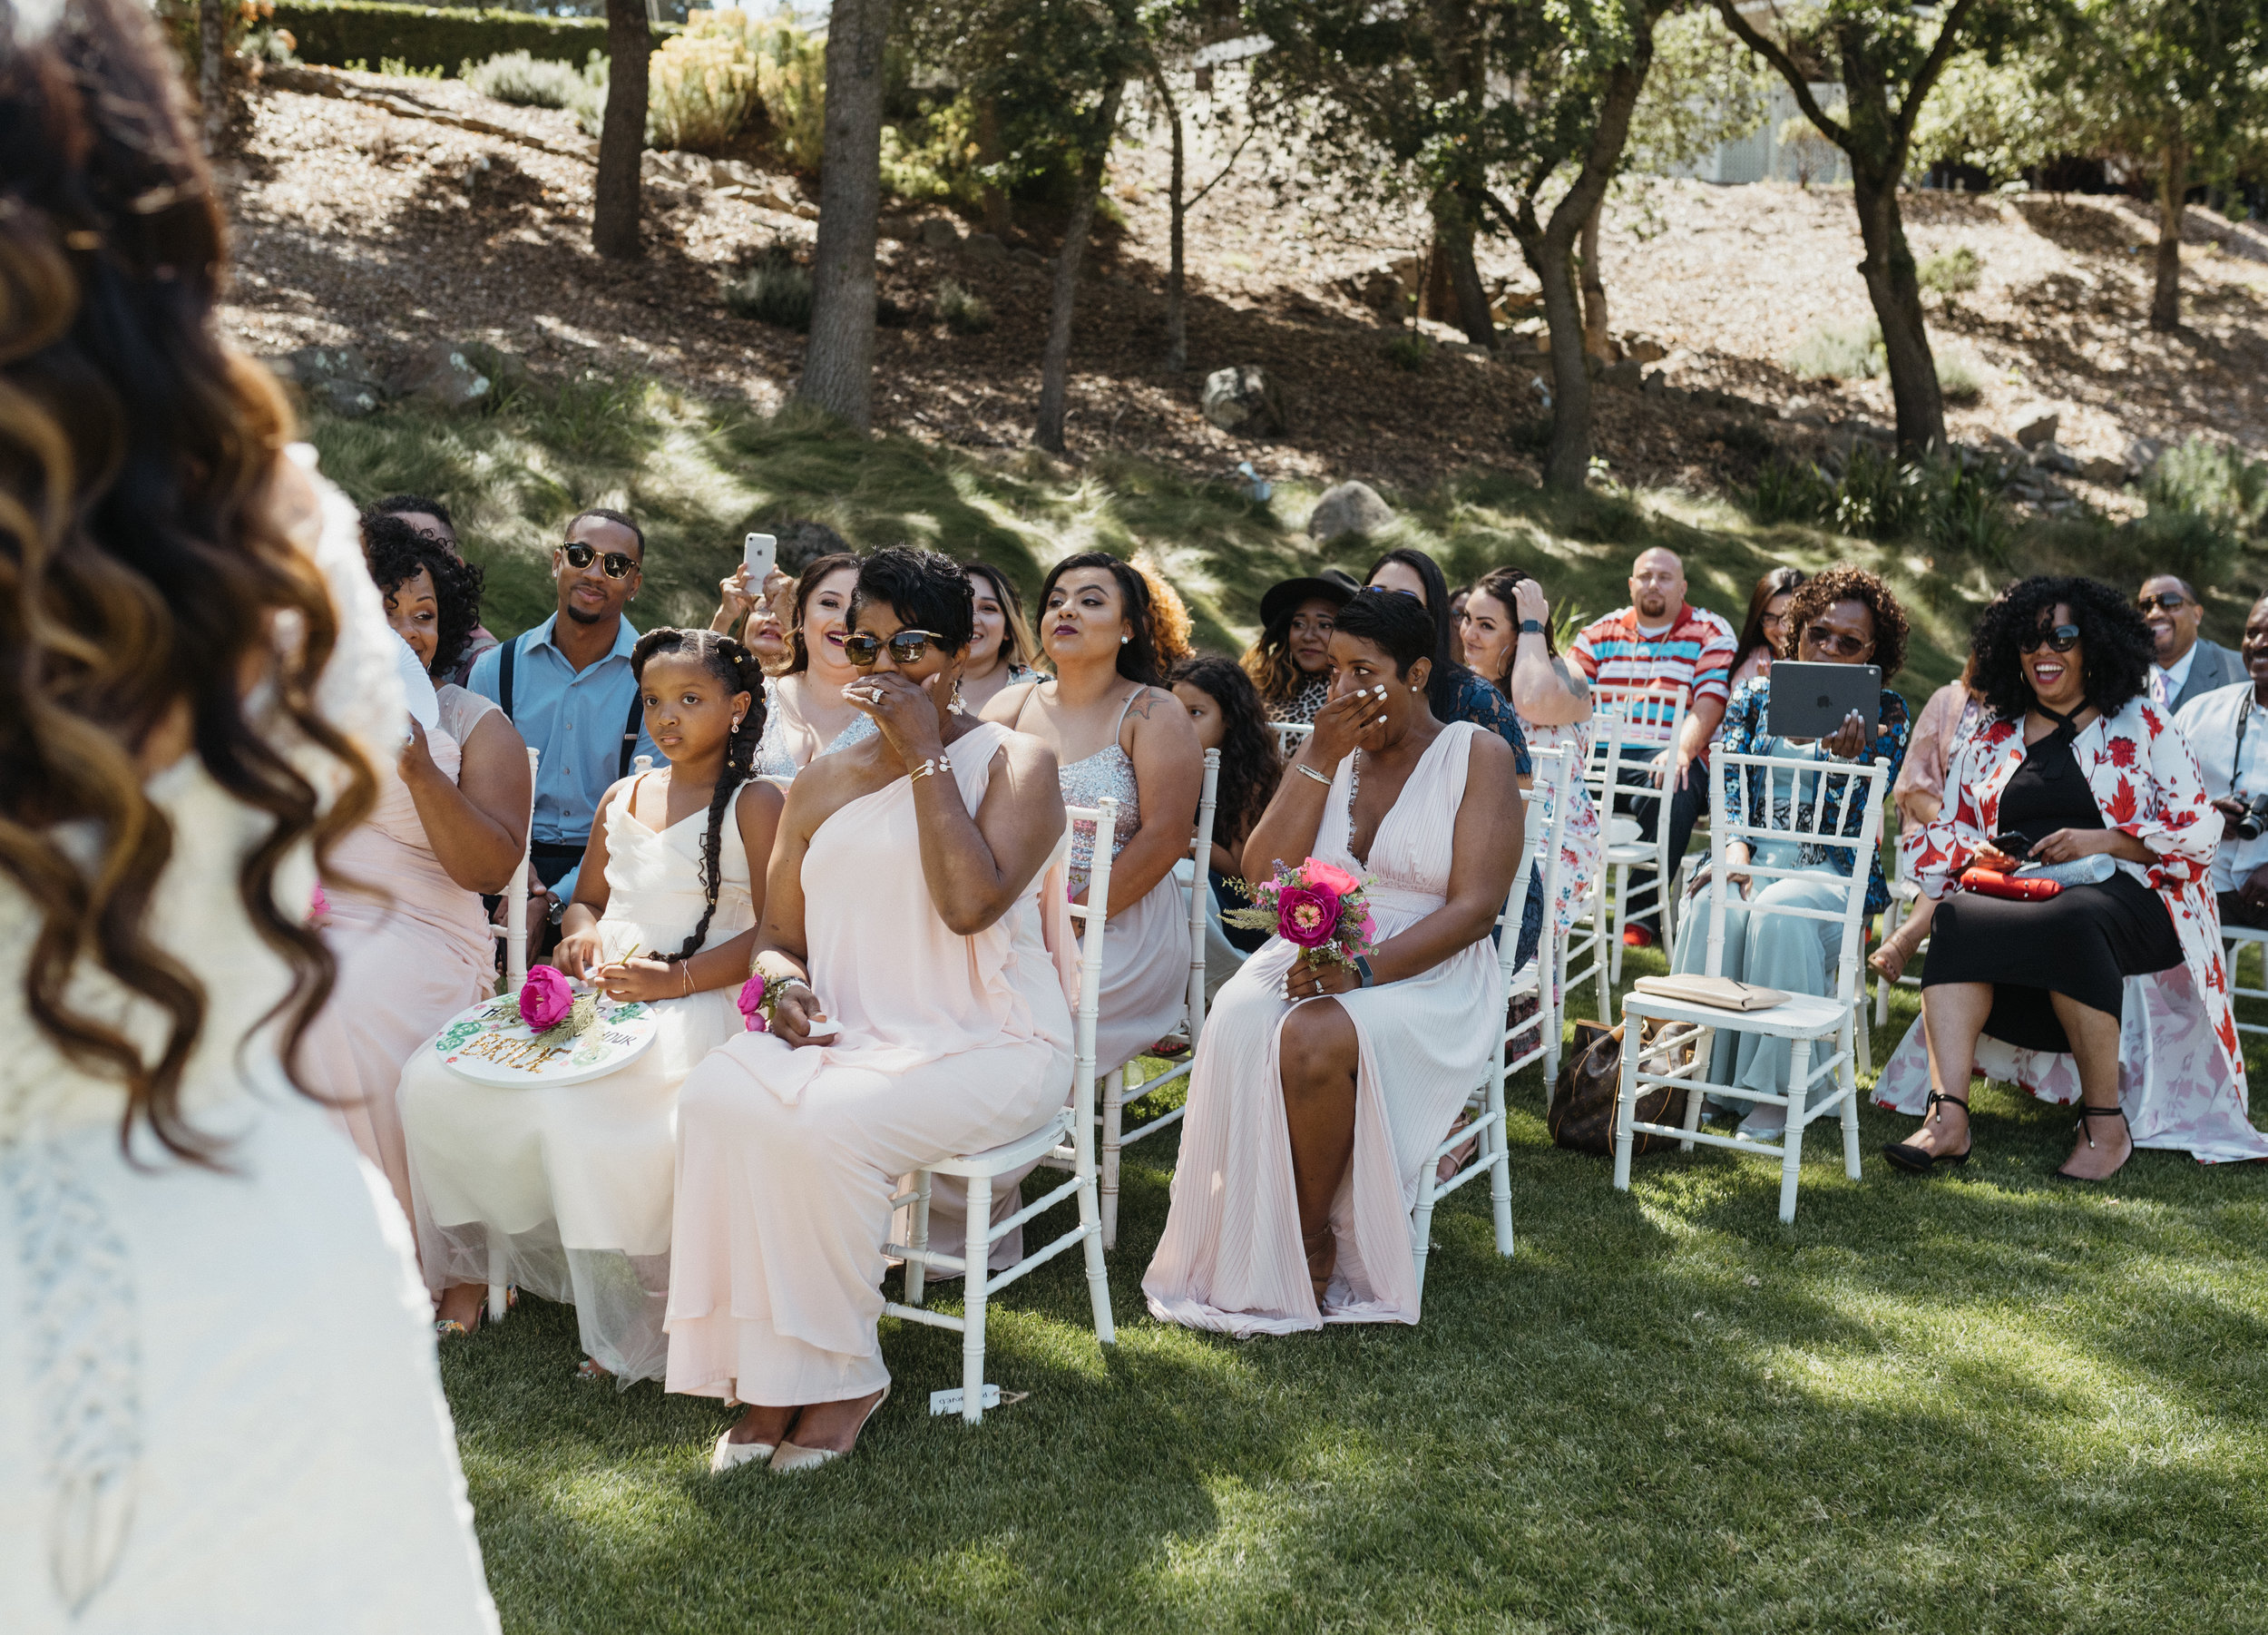 wedding guests at napa country club ceremony. photo by amira maxwell